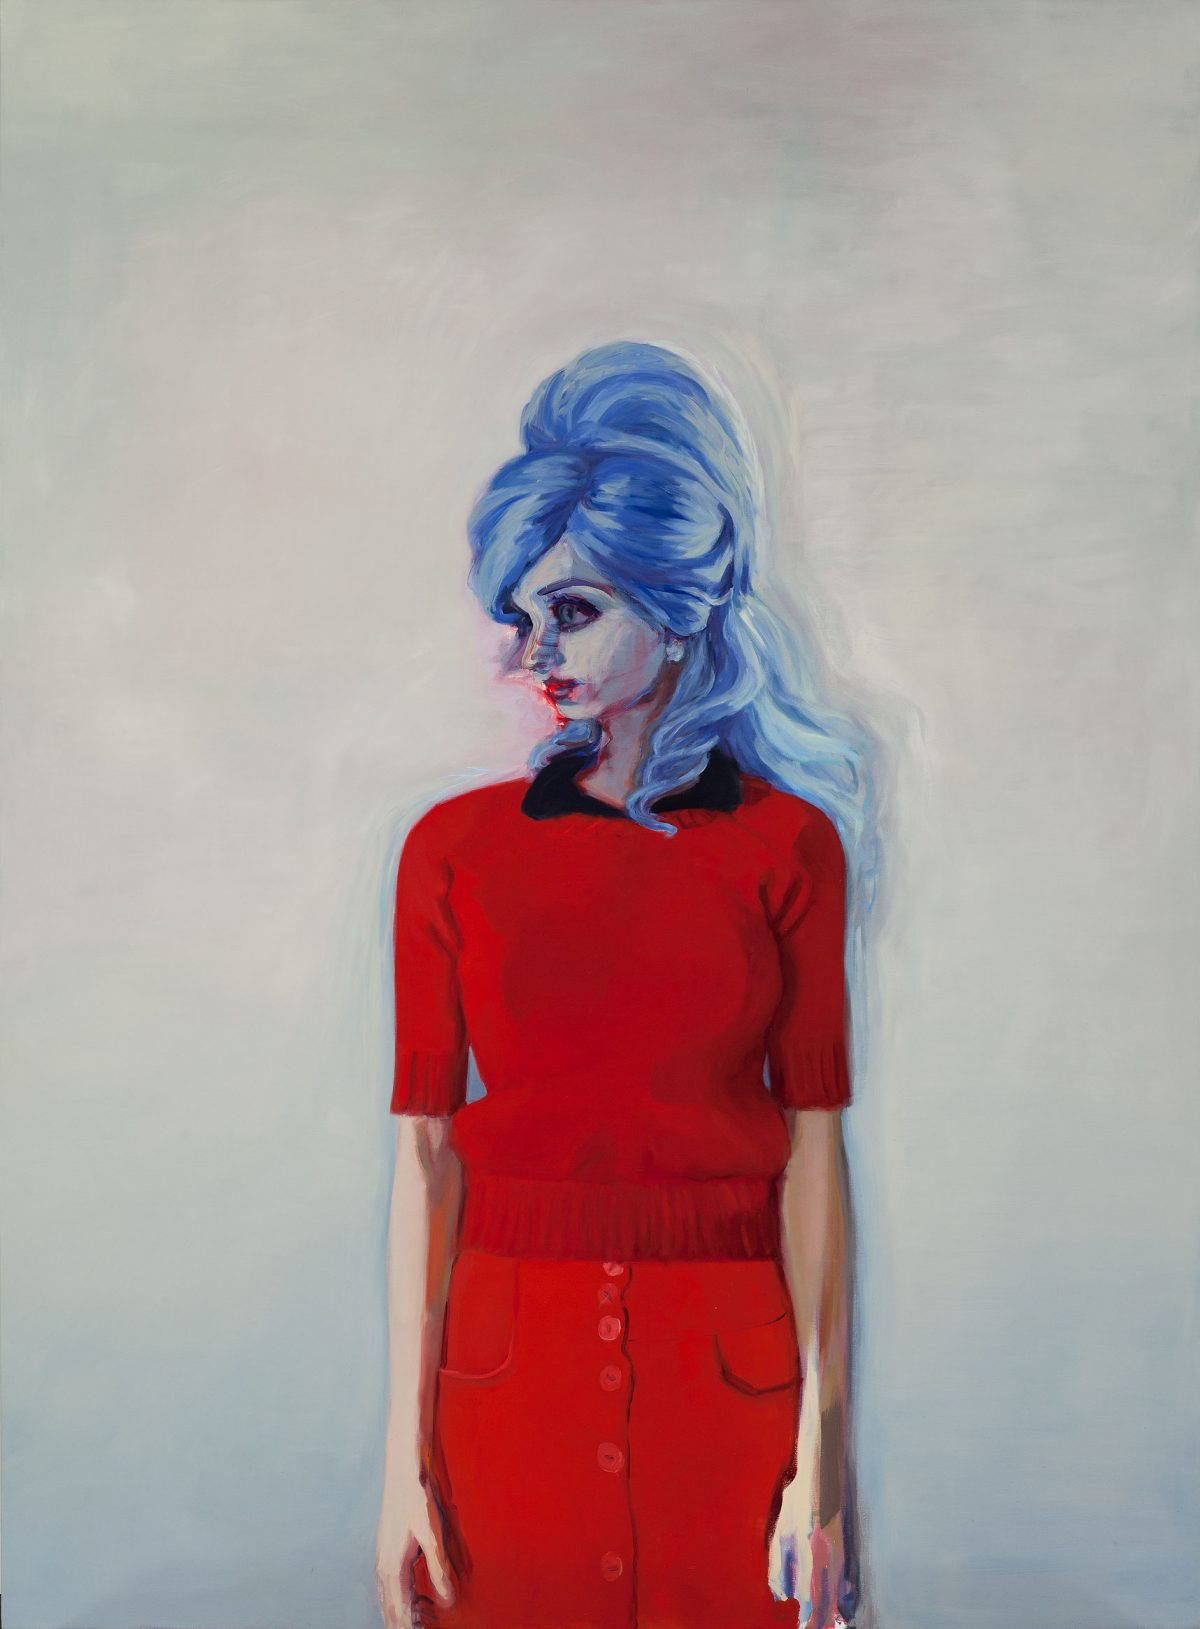 Earthling (Red Sweater), 2012, Janet Werner, Huile sur toile.